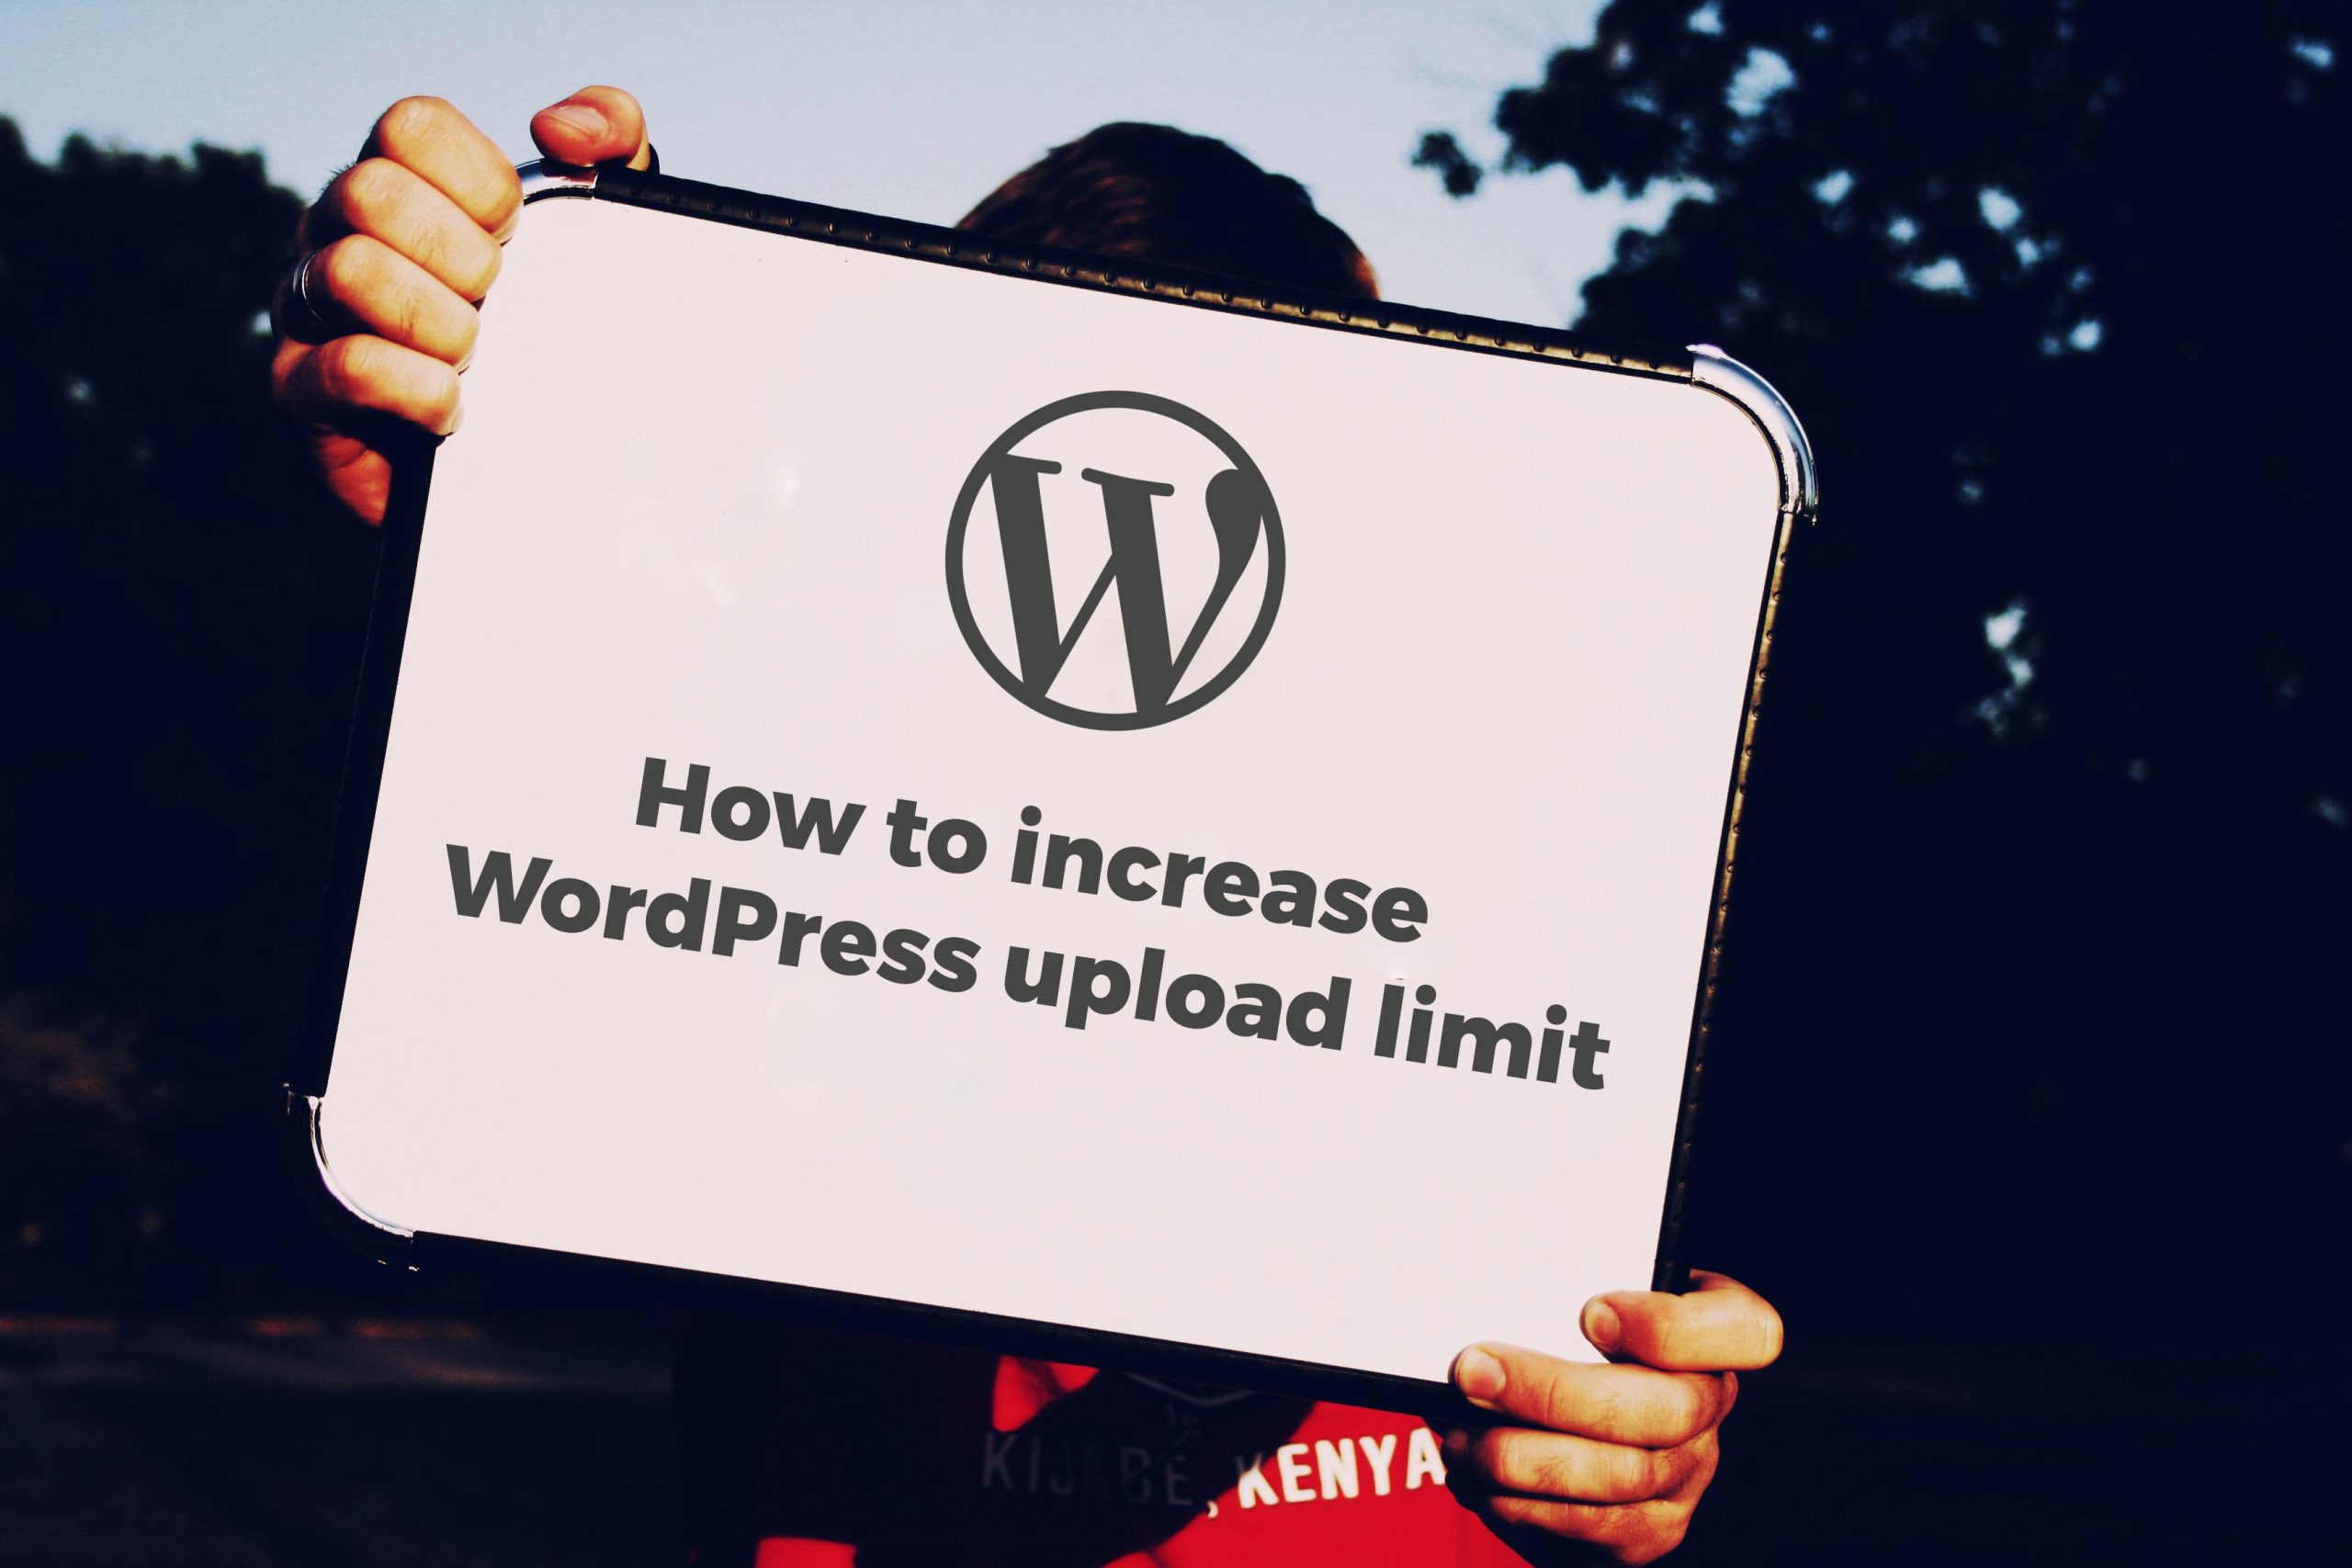 How to increase wordpress upload limit